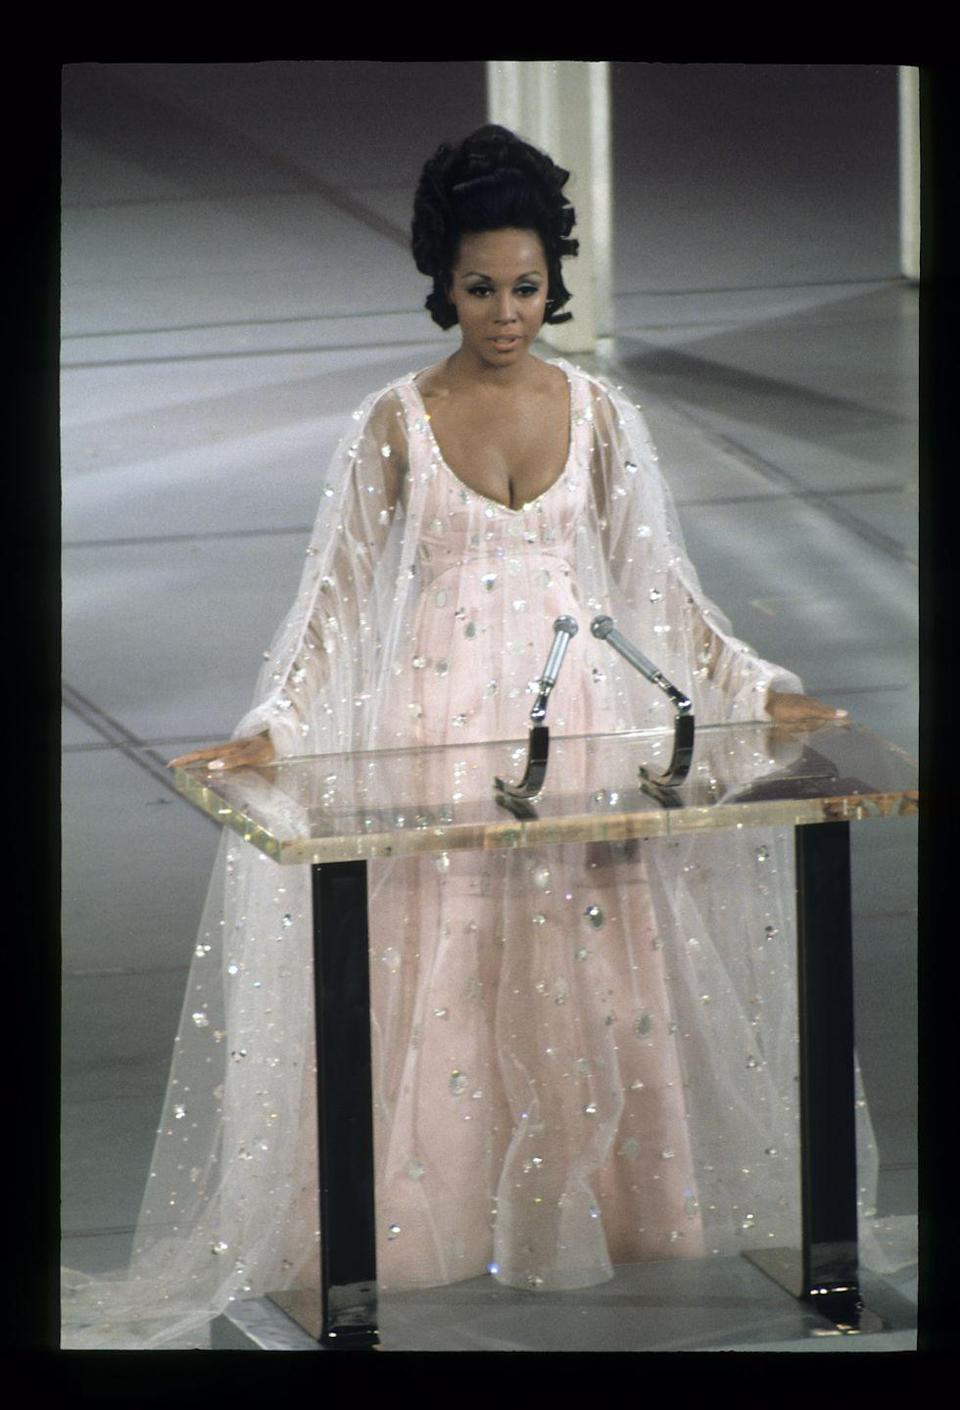 <p>Just look at those epic sleeves! Diahann was positively angelic in this pale pink tulle gown with sparkly embellishments throughout. She was one of the presenters on stage during the ceremony.</p>